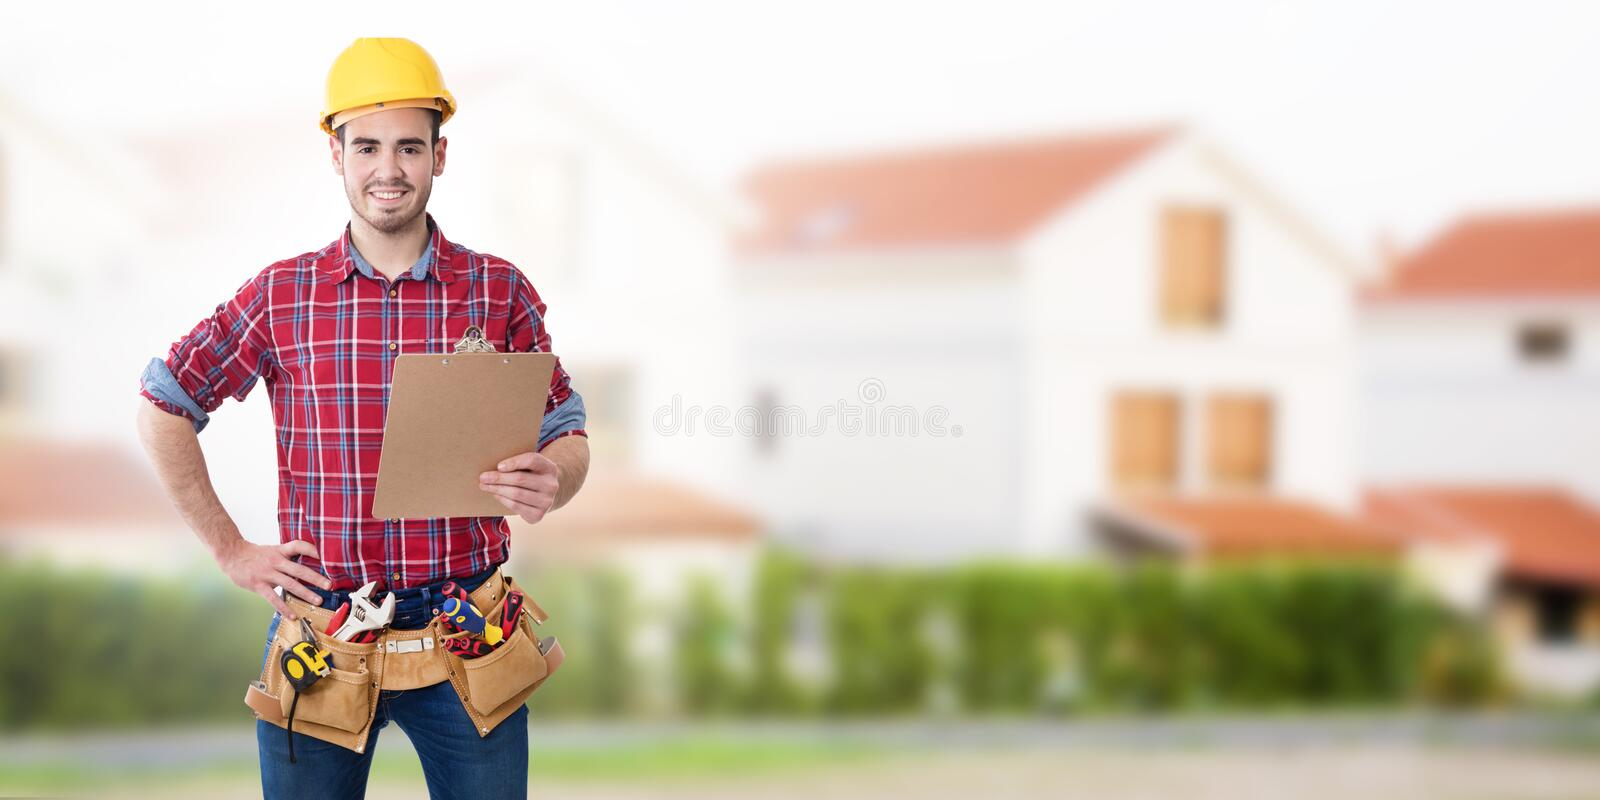 Construction worker or professional stock photos